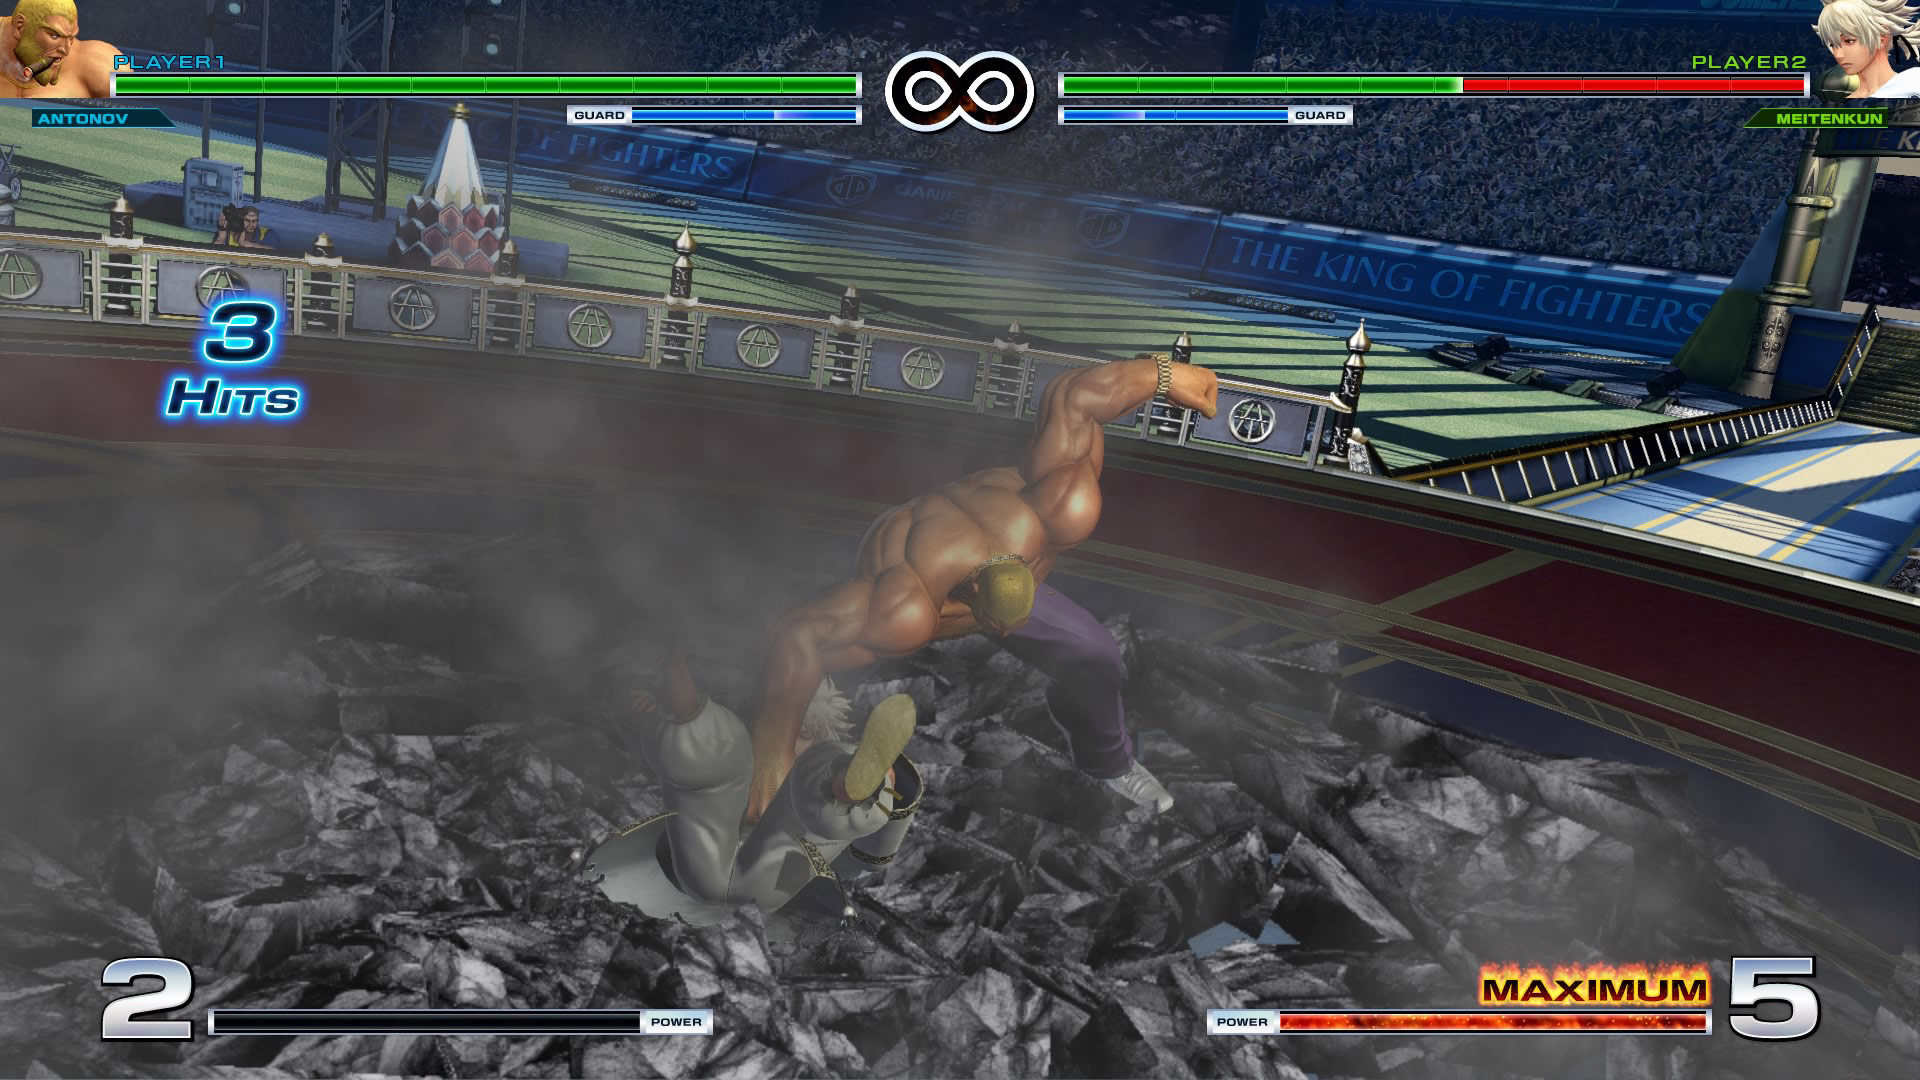 King of Fighters 14 1.10 graphics update 42 out of 60 image gallery